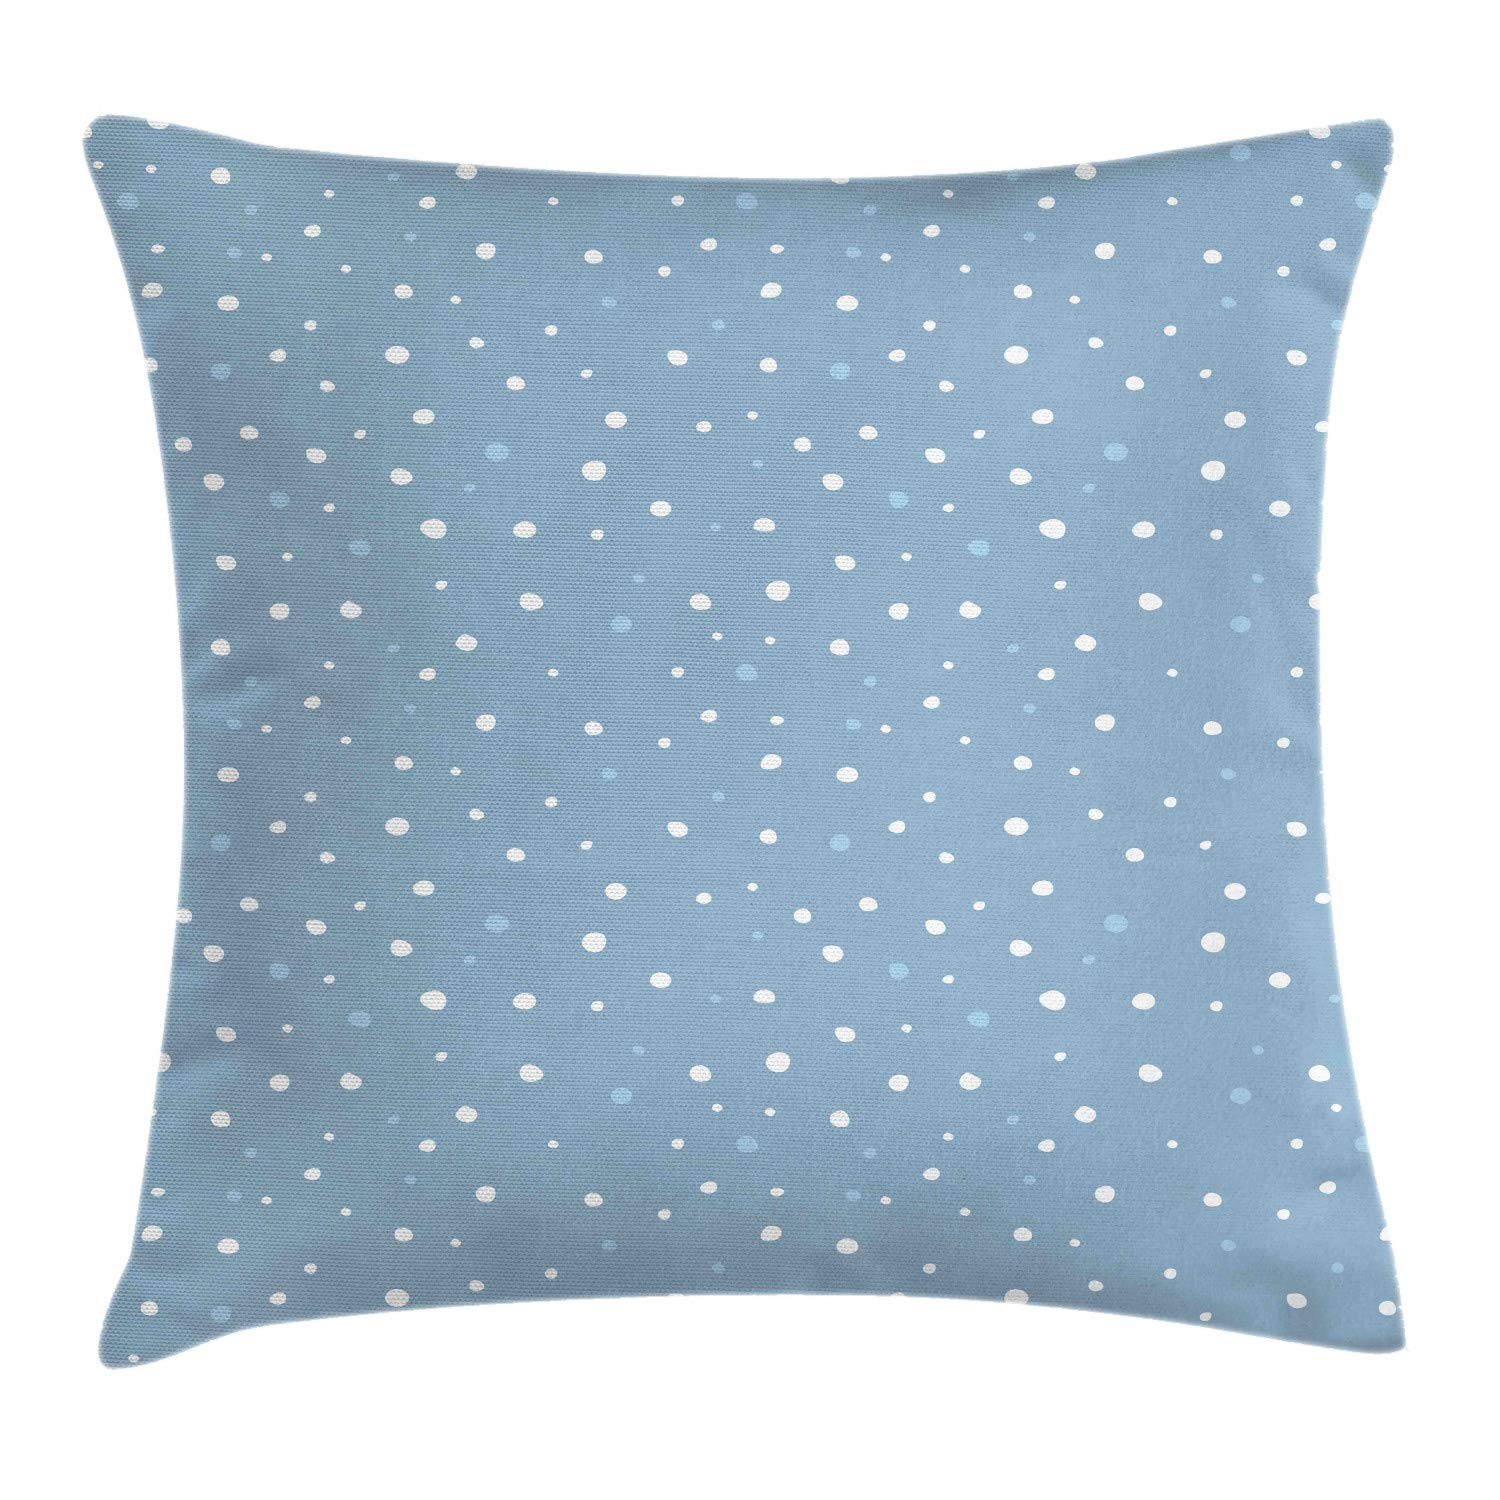 Lunarable Dusty Blue Throw Pillow Cushion Cover, Bubbly Snowflakes Polka Dots Inspired Pattern Nursery Concept, Decorative Square Accent Pillow Case, 26'' X 26'', Slate Blue White Baby Blue by Lunarable